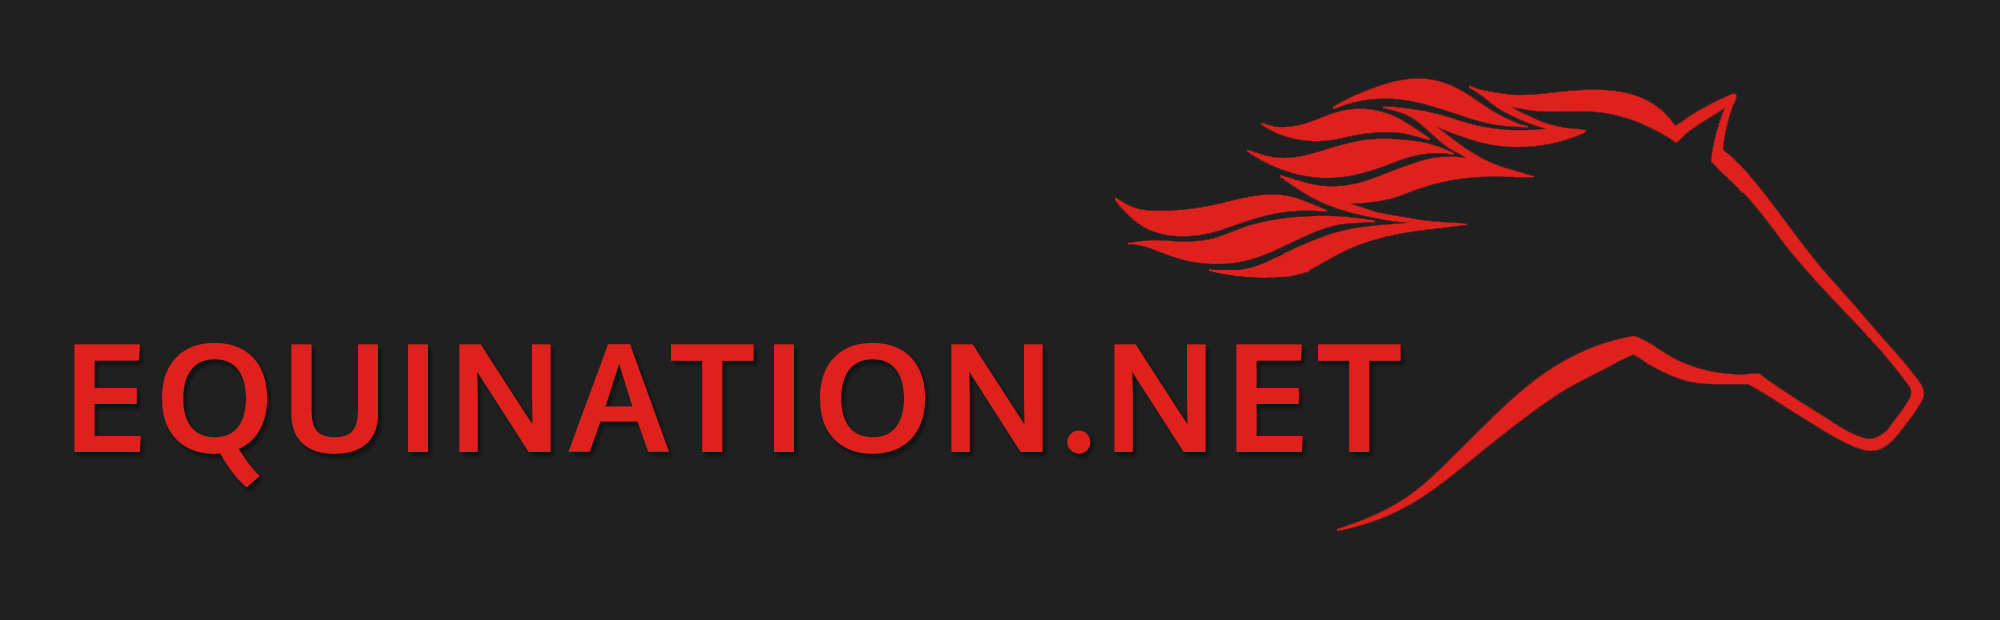 Equination.net